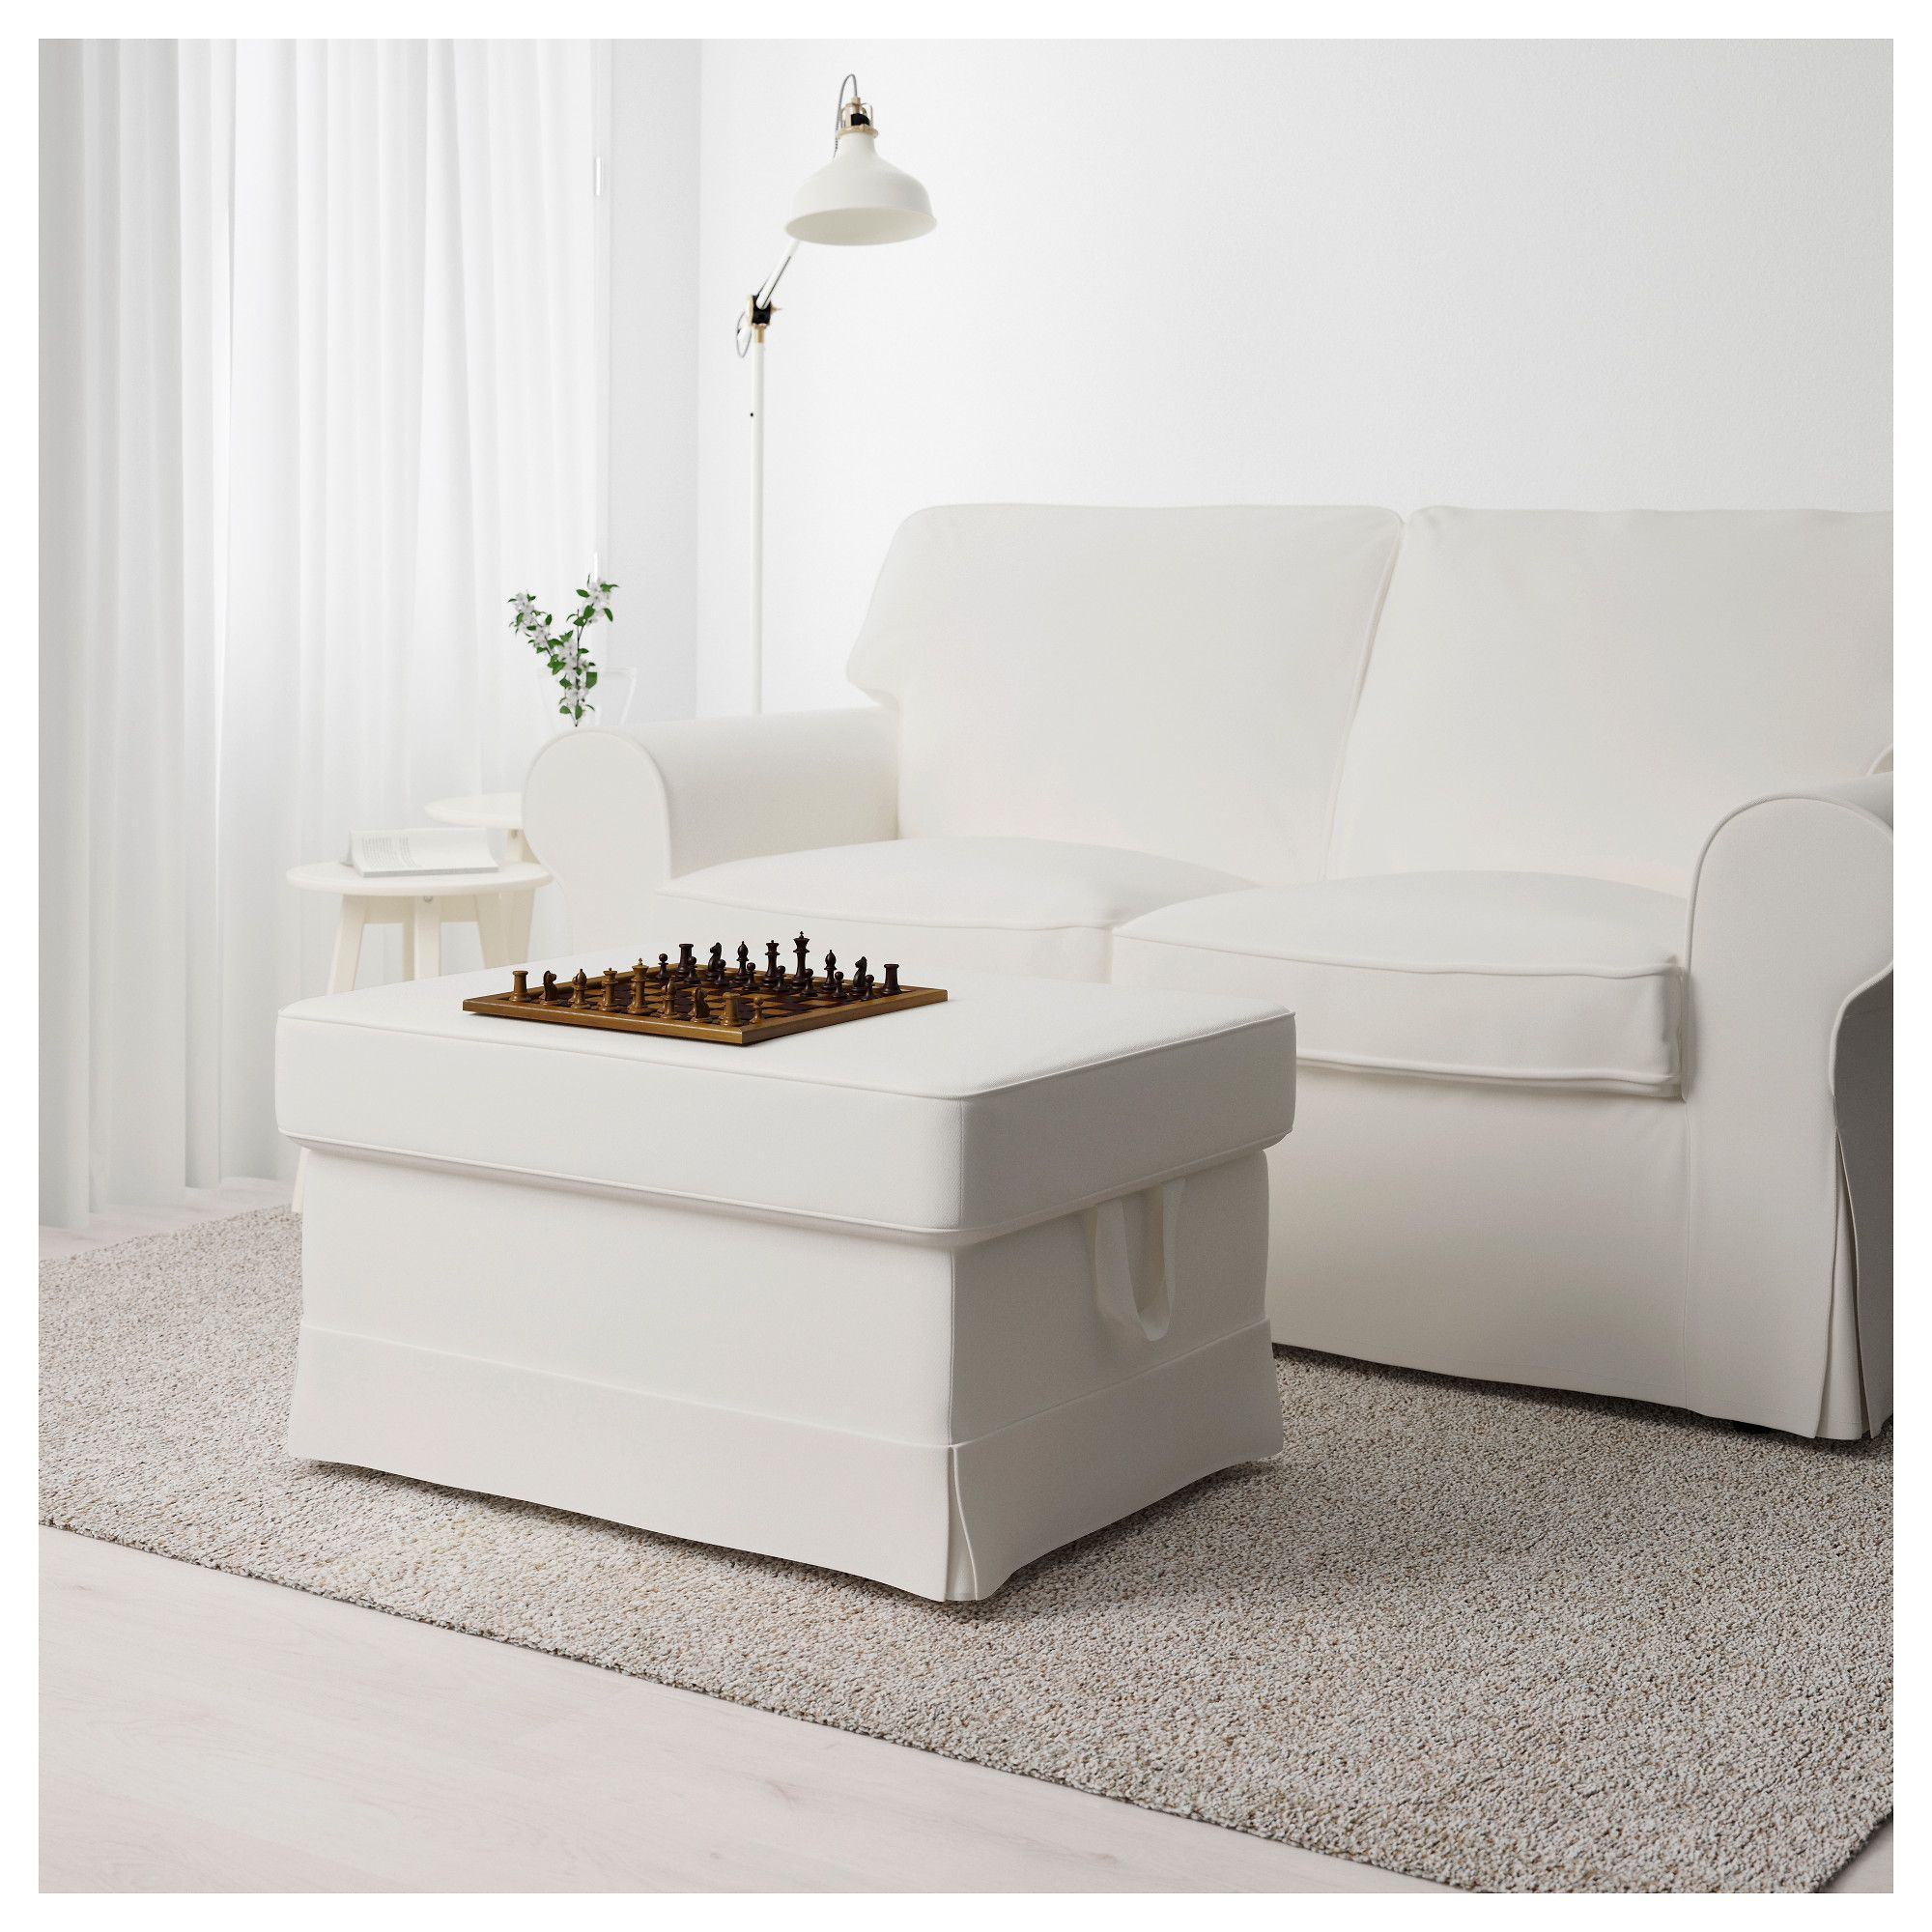 Ektorp Sofa Vittaryd White Ikea Ektorp Footstool Vittaryd White In 2019 Products Fodere